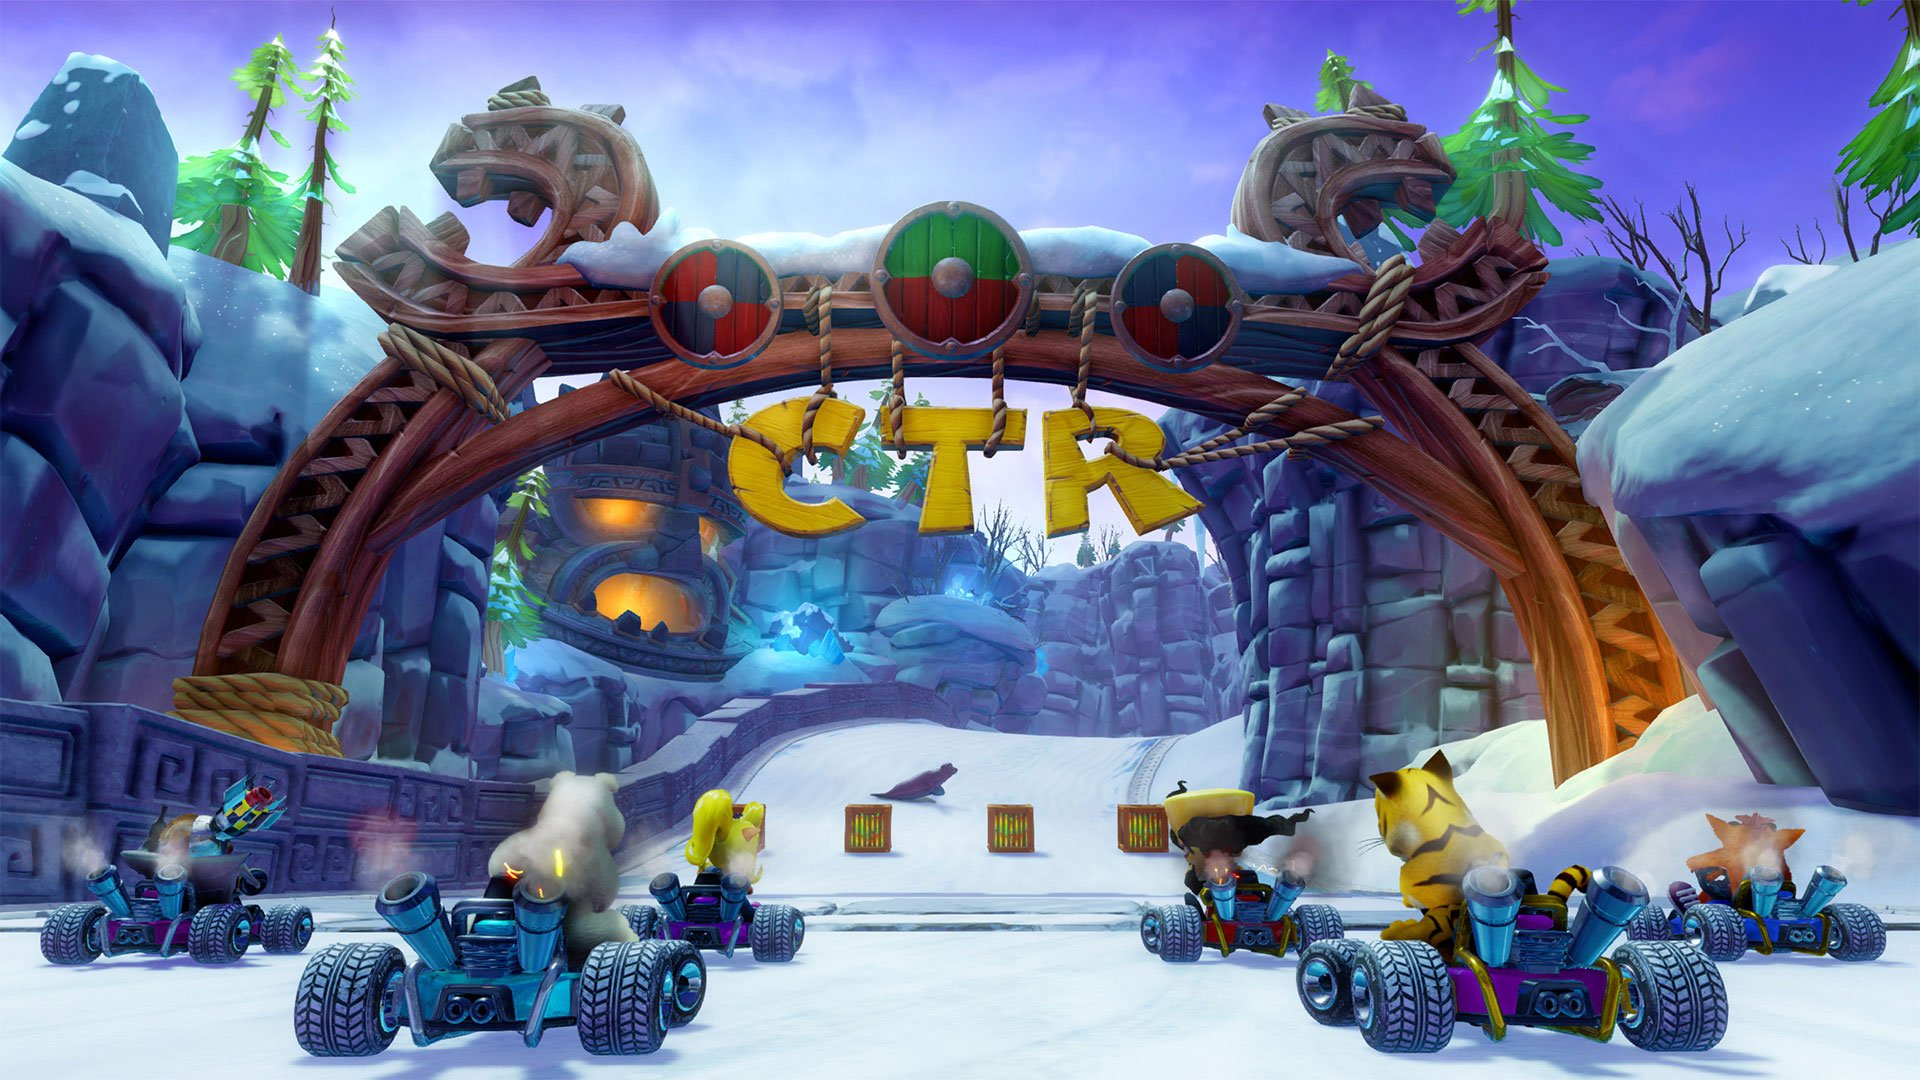 To change your difficulty setting in Crash Team Racing Nitro-Fueled, you'll need to start a new save file.